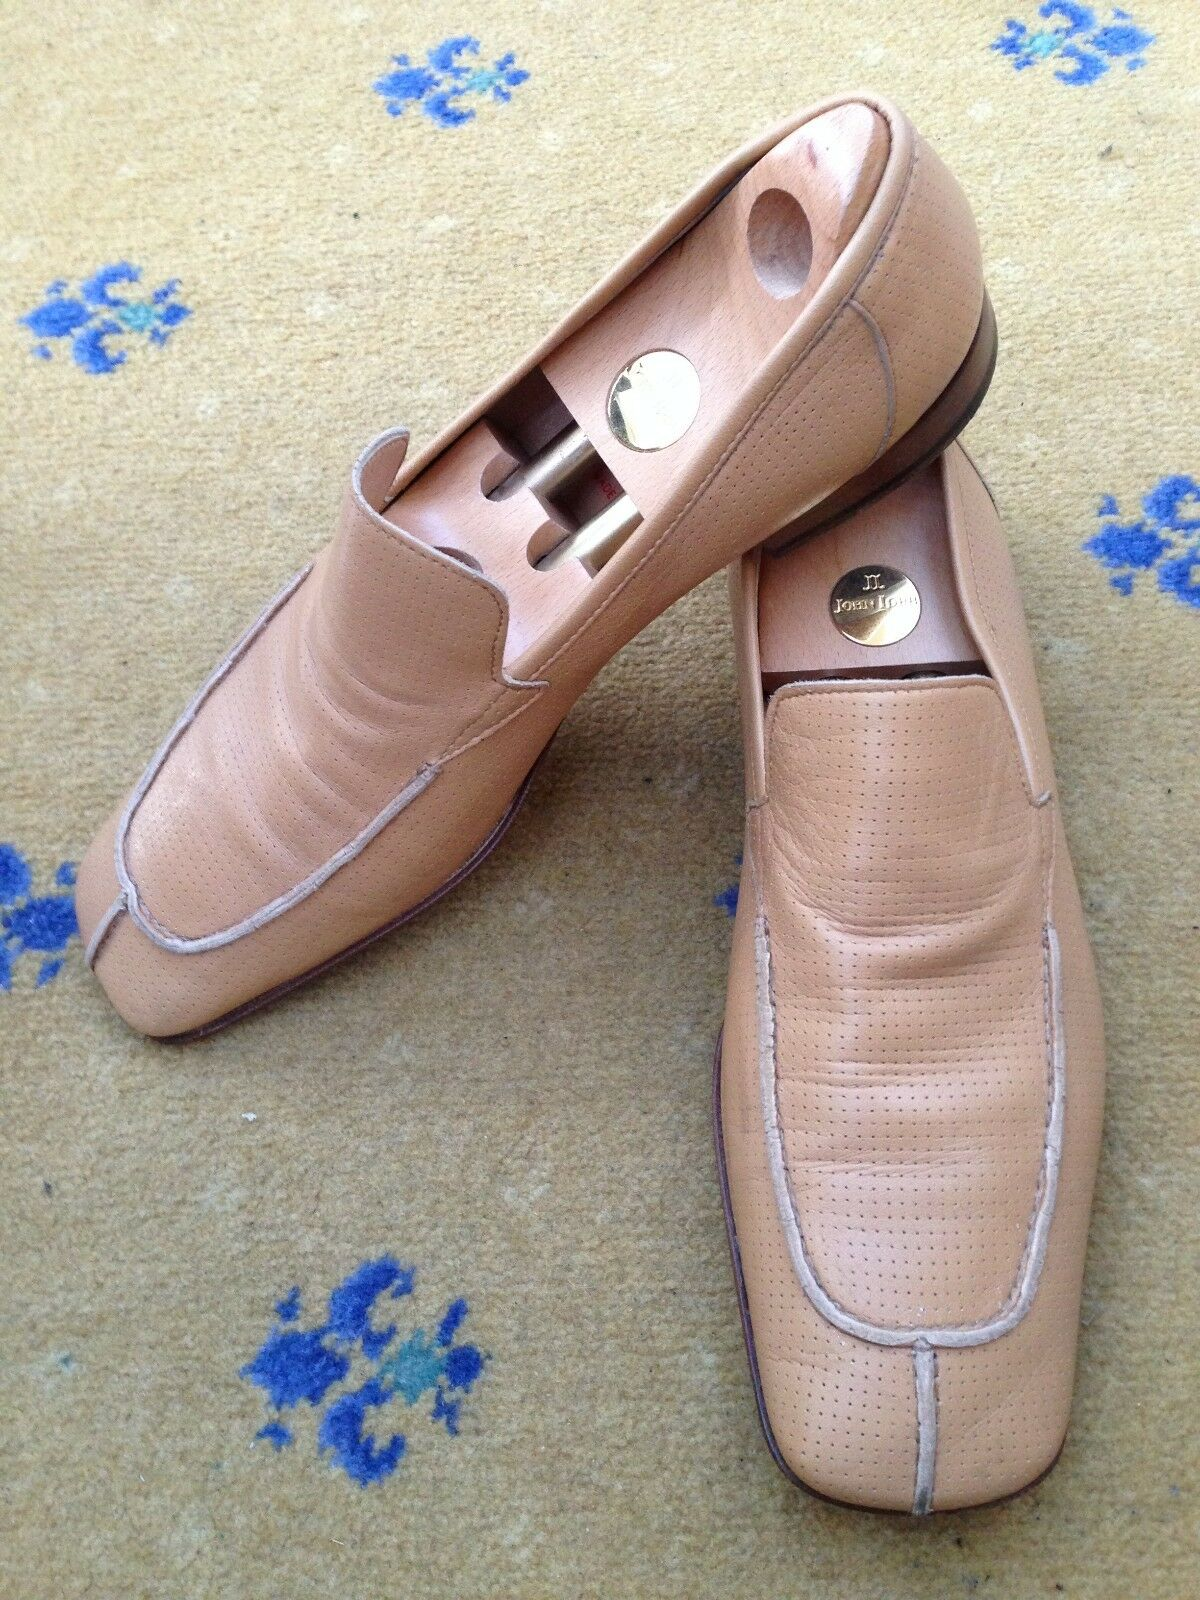 Miu Miu by Prada Mens Shoes Tan Brown Leather Loafers US 11